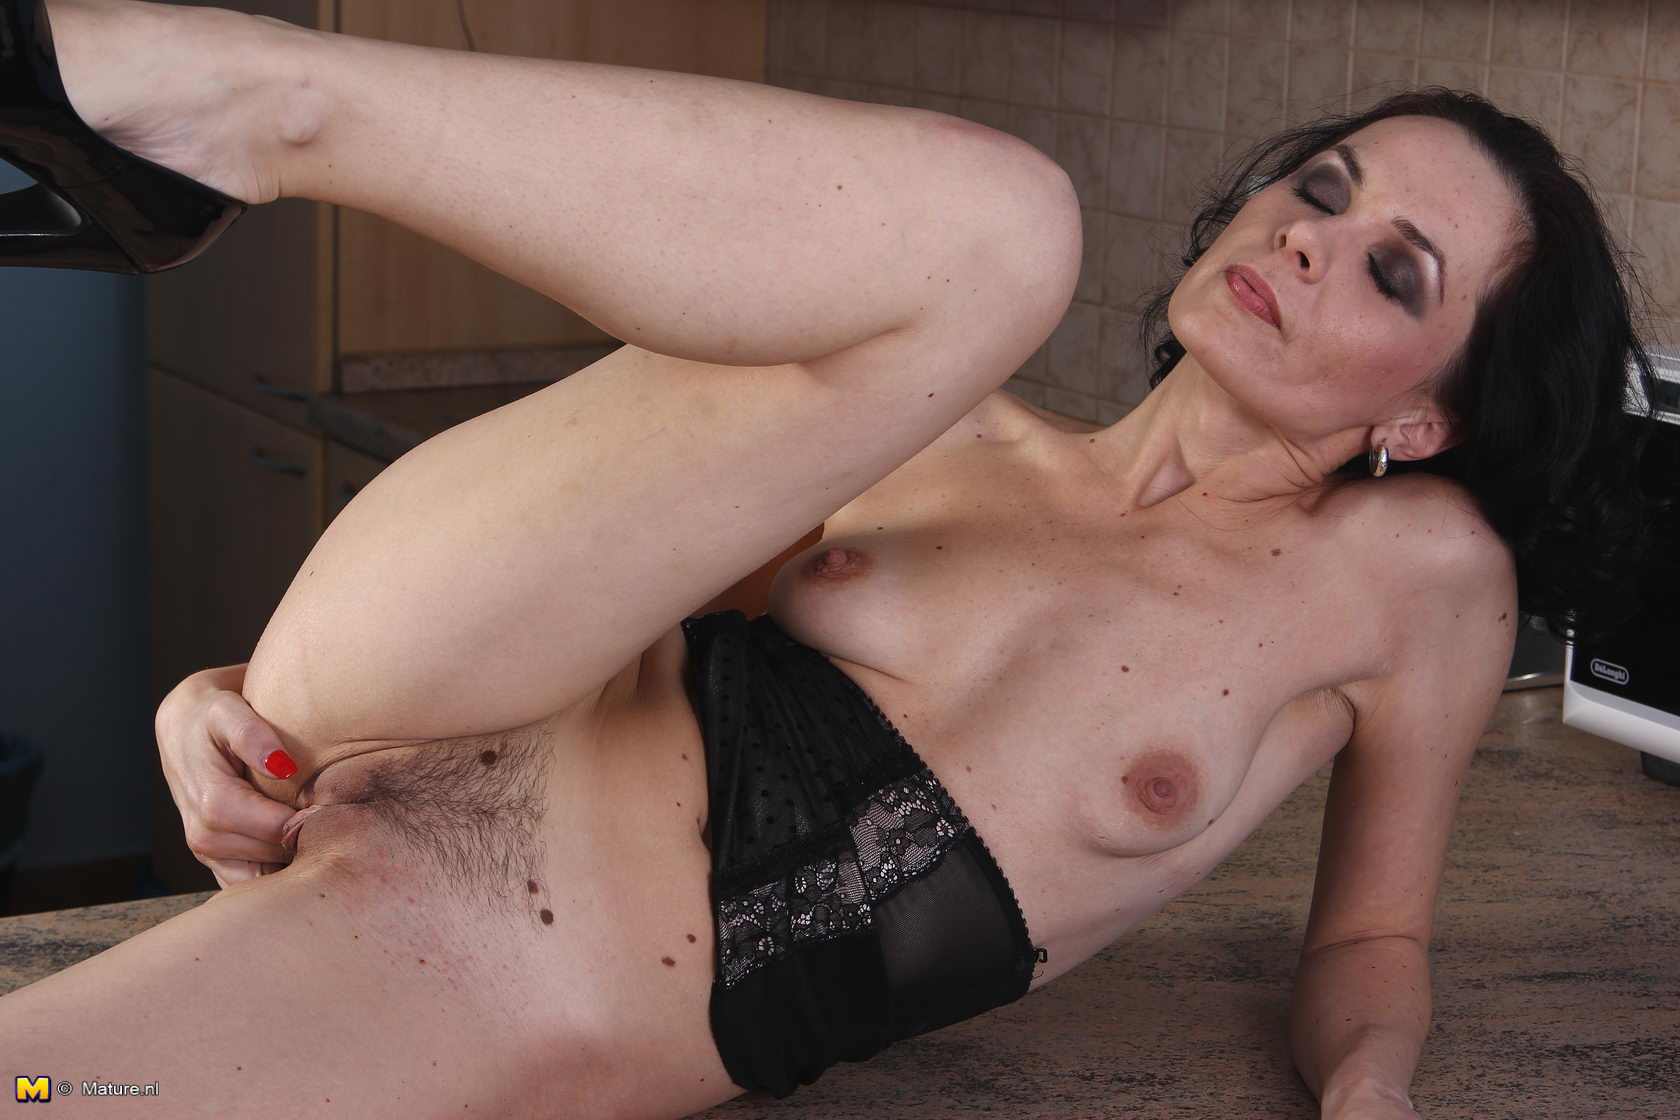 click here to see more at mature nl click here to see more at mature